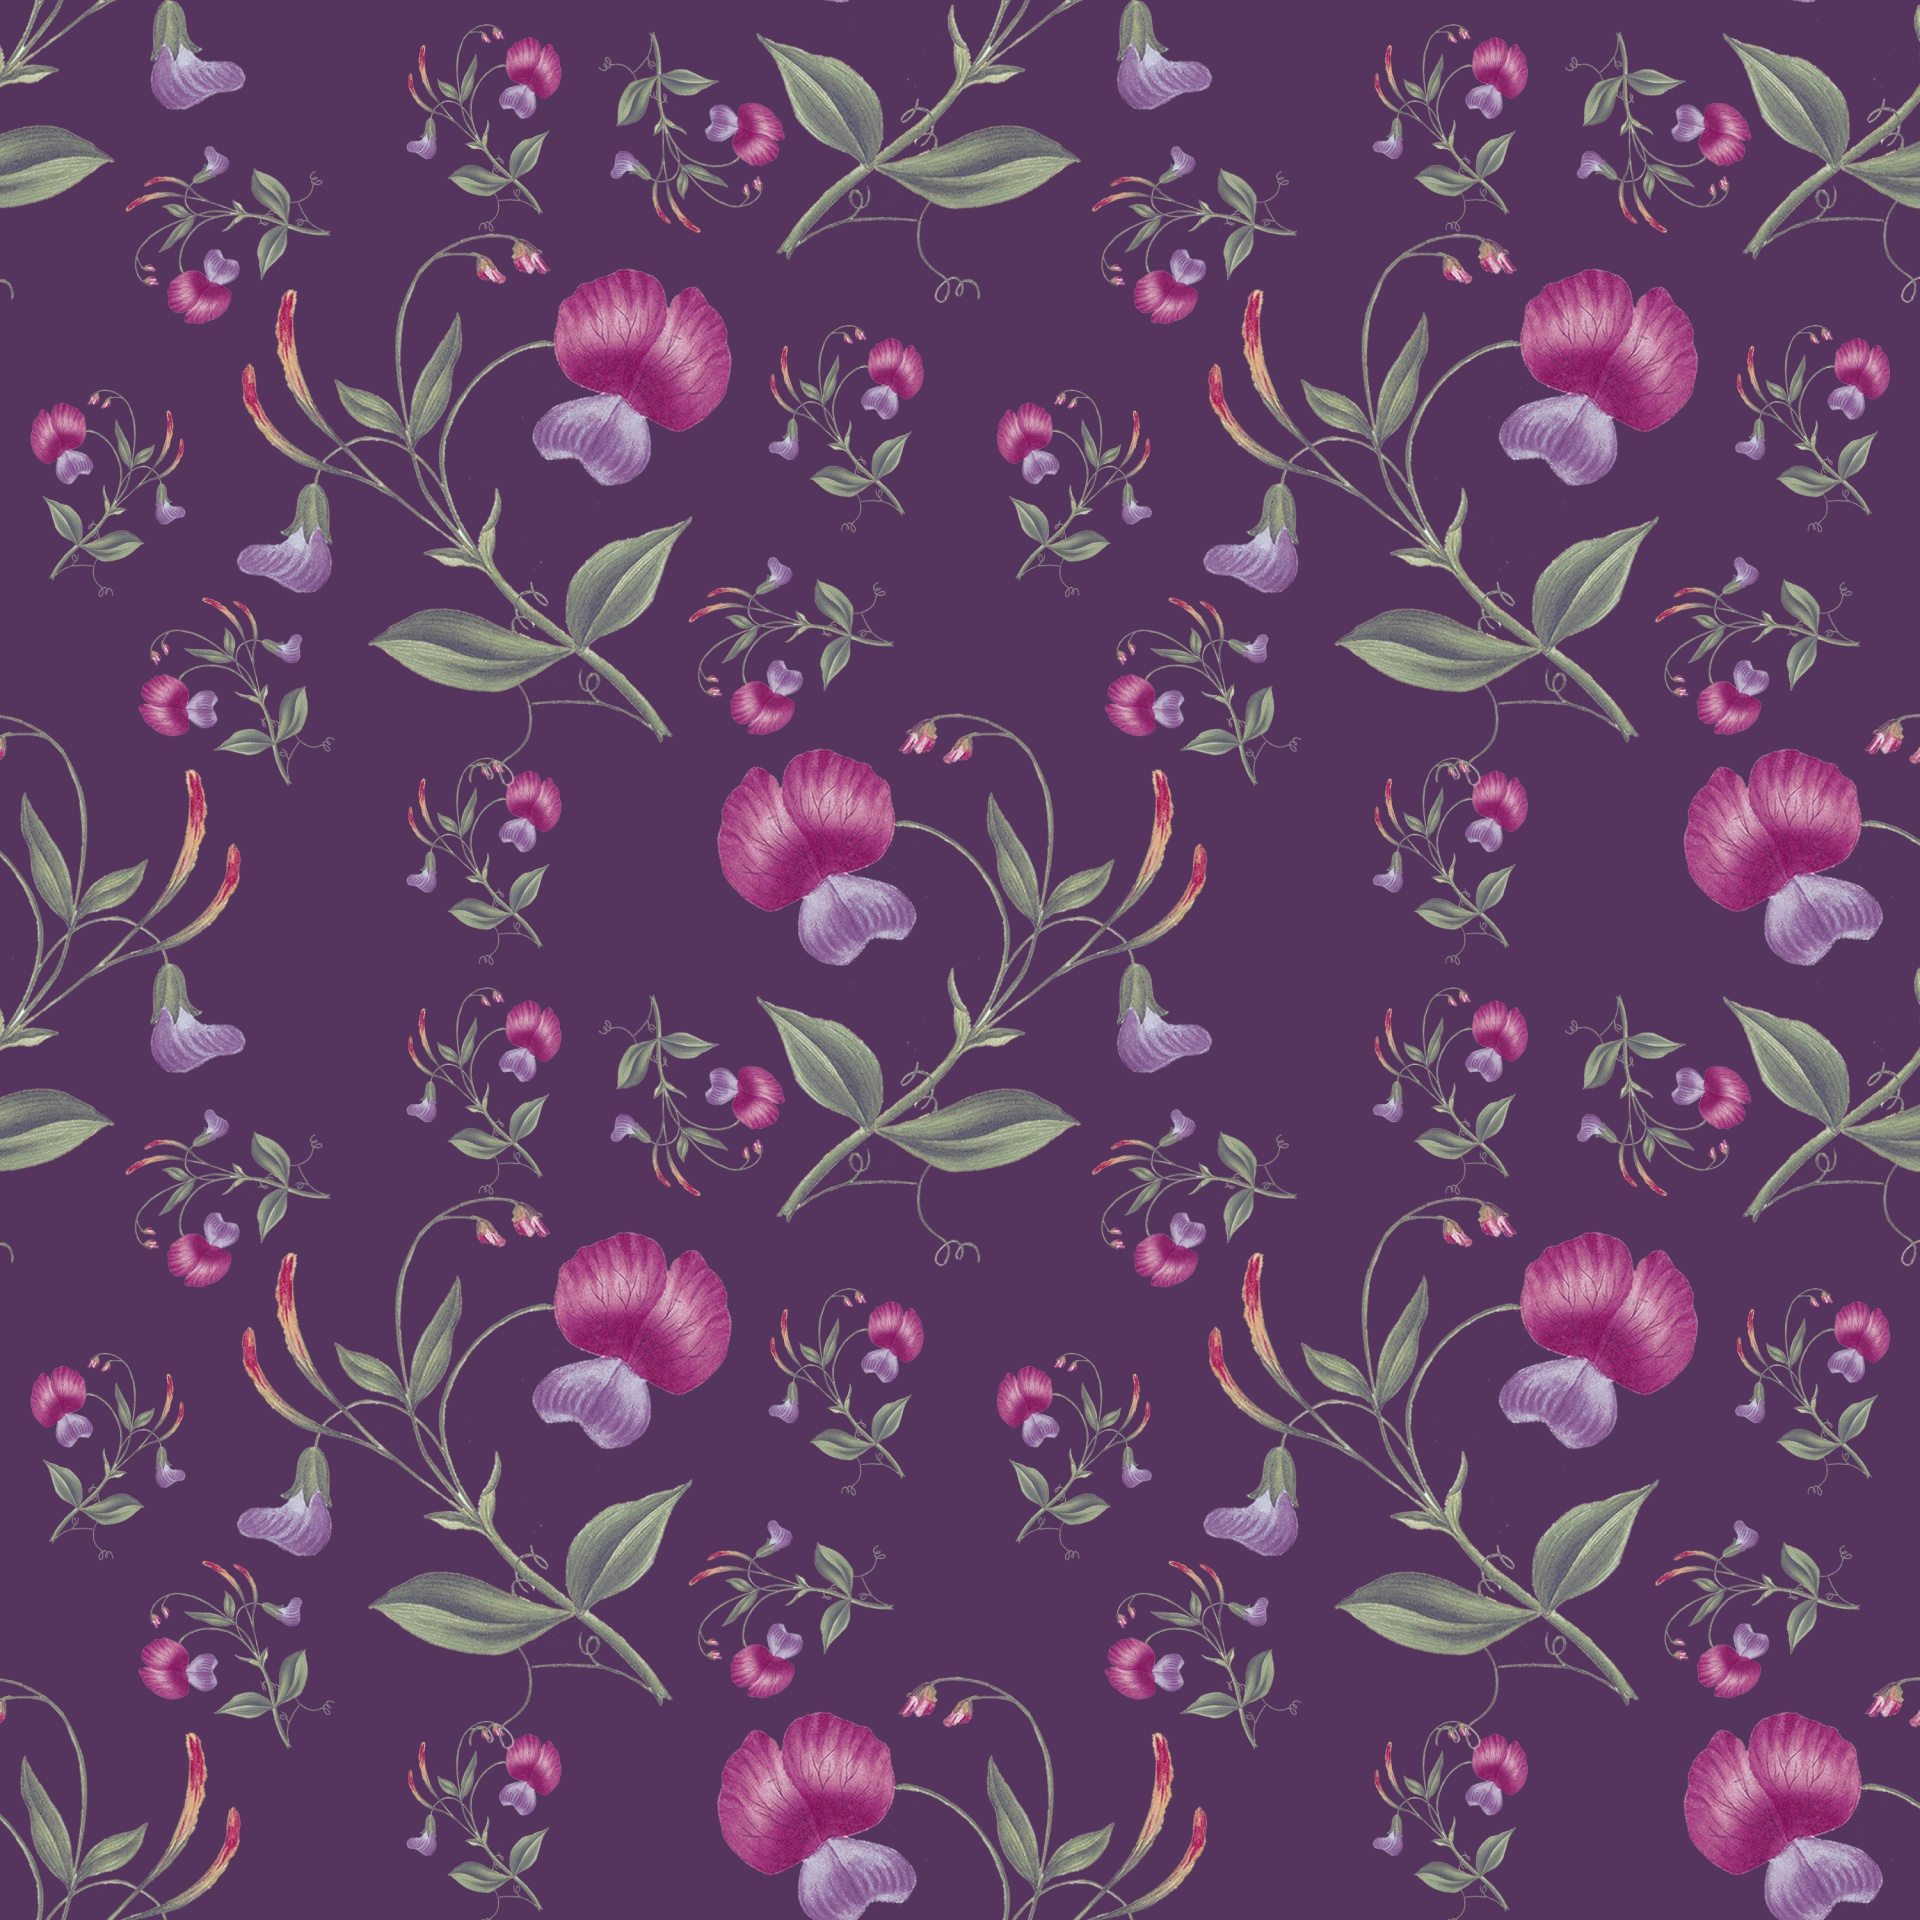 Flowers Floral Wallpaper Background Paper Free Image From